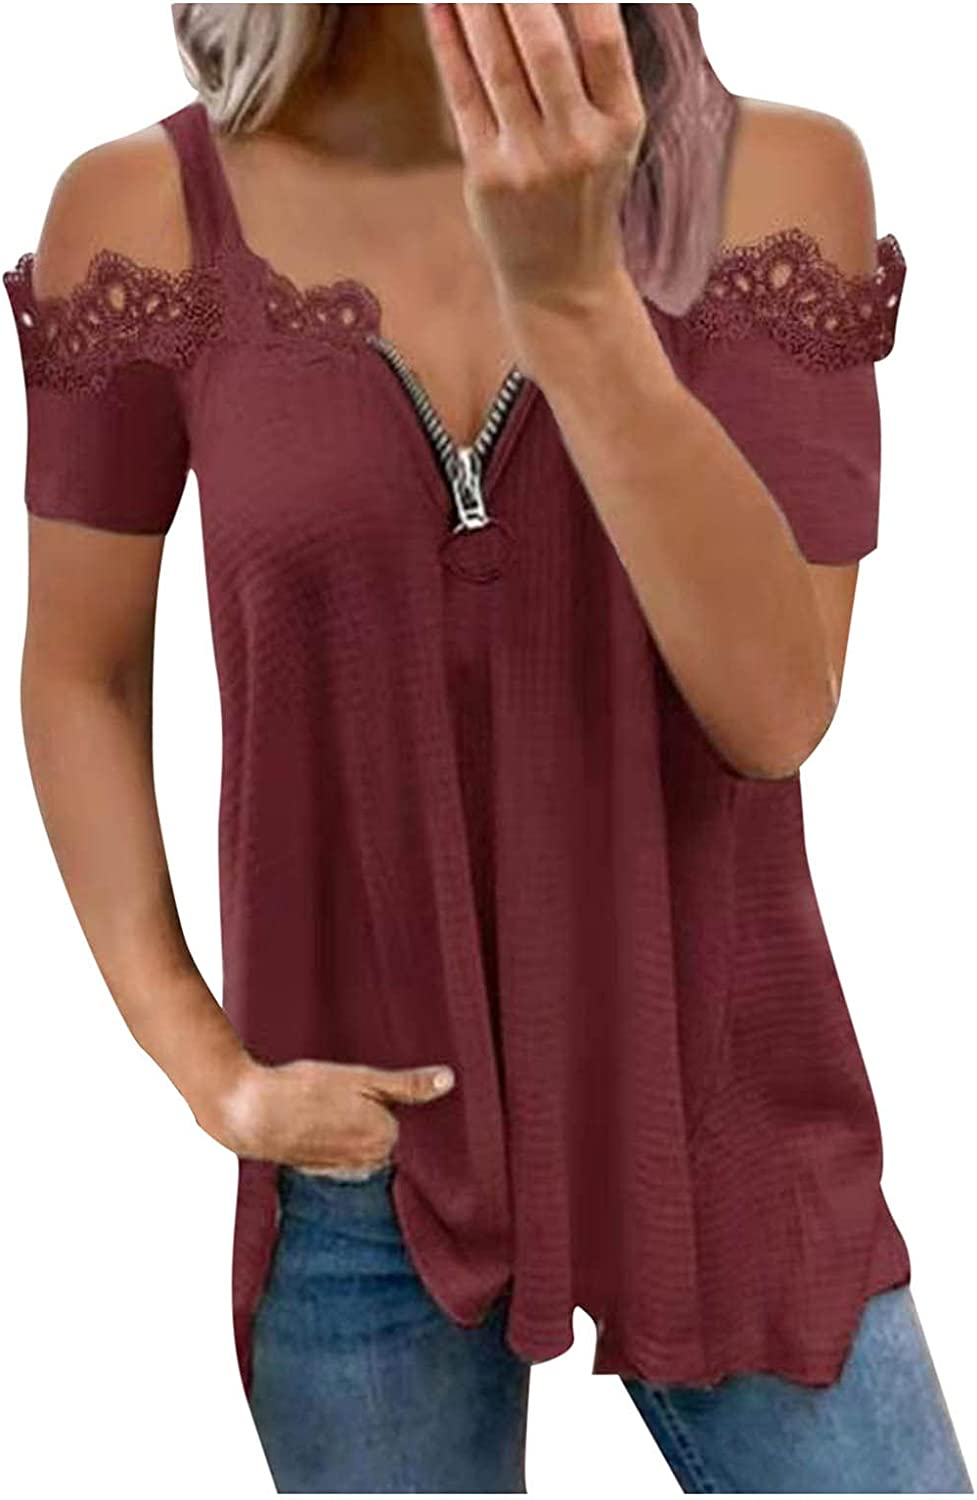 Sayhi Fashion Women Plus Size Printed Limited price Max 44% OFF Blouse O-Neck Short Sleeve